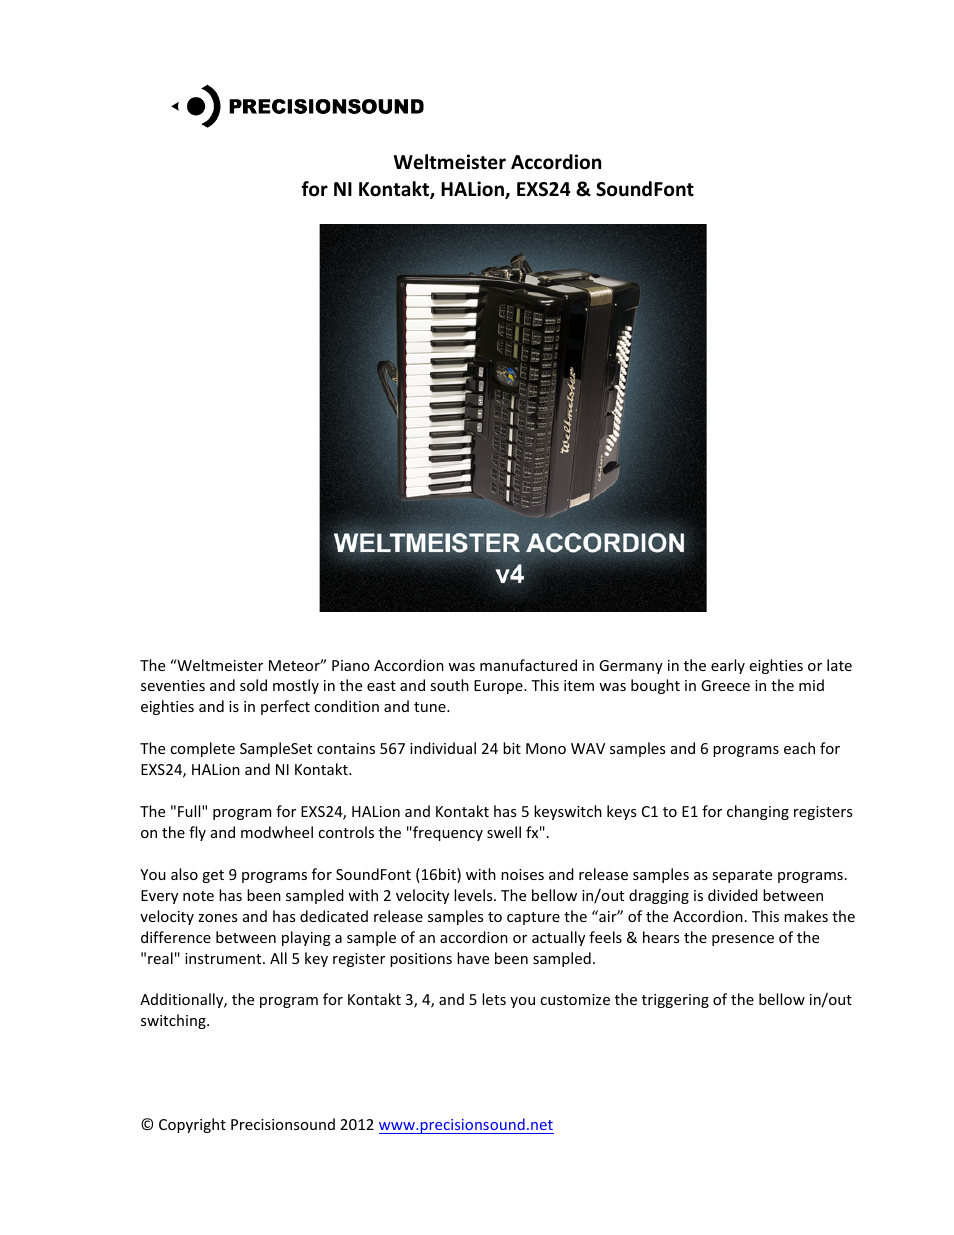 Precisionsound Weltmeister Accordion User Manual | 4 pages